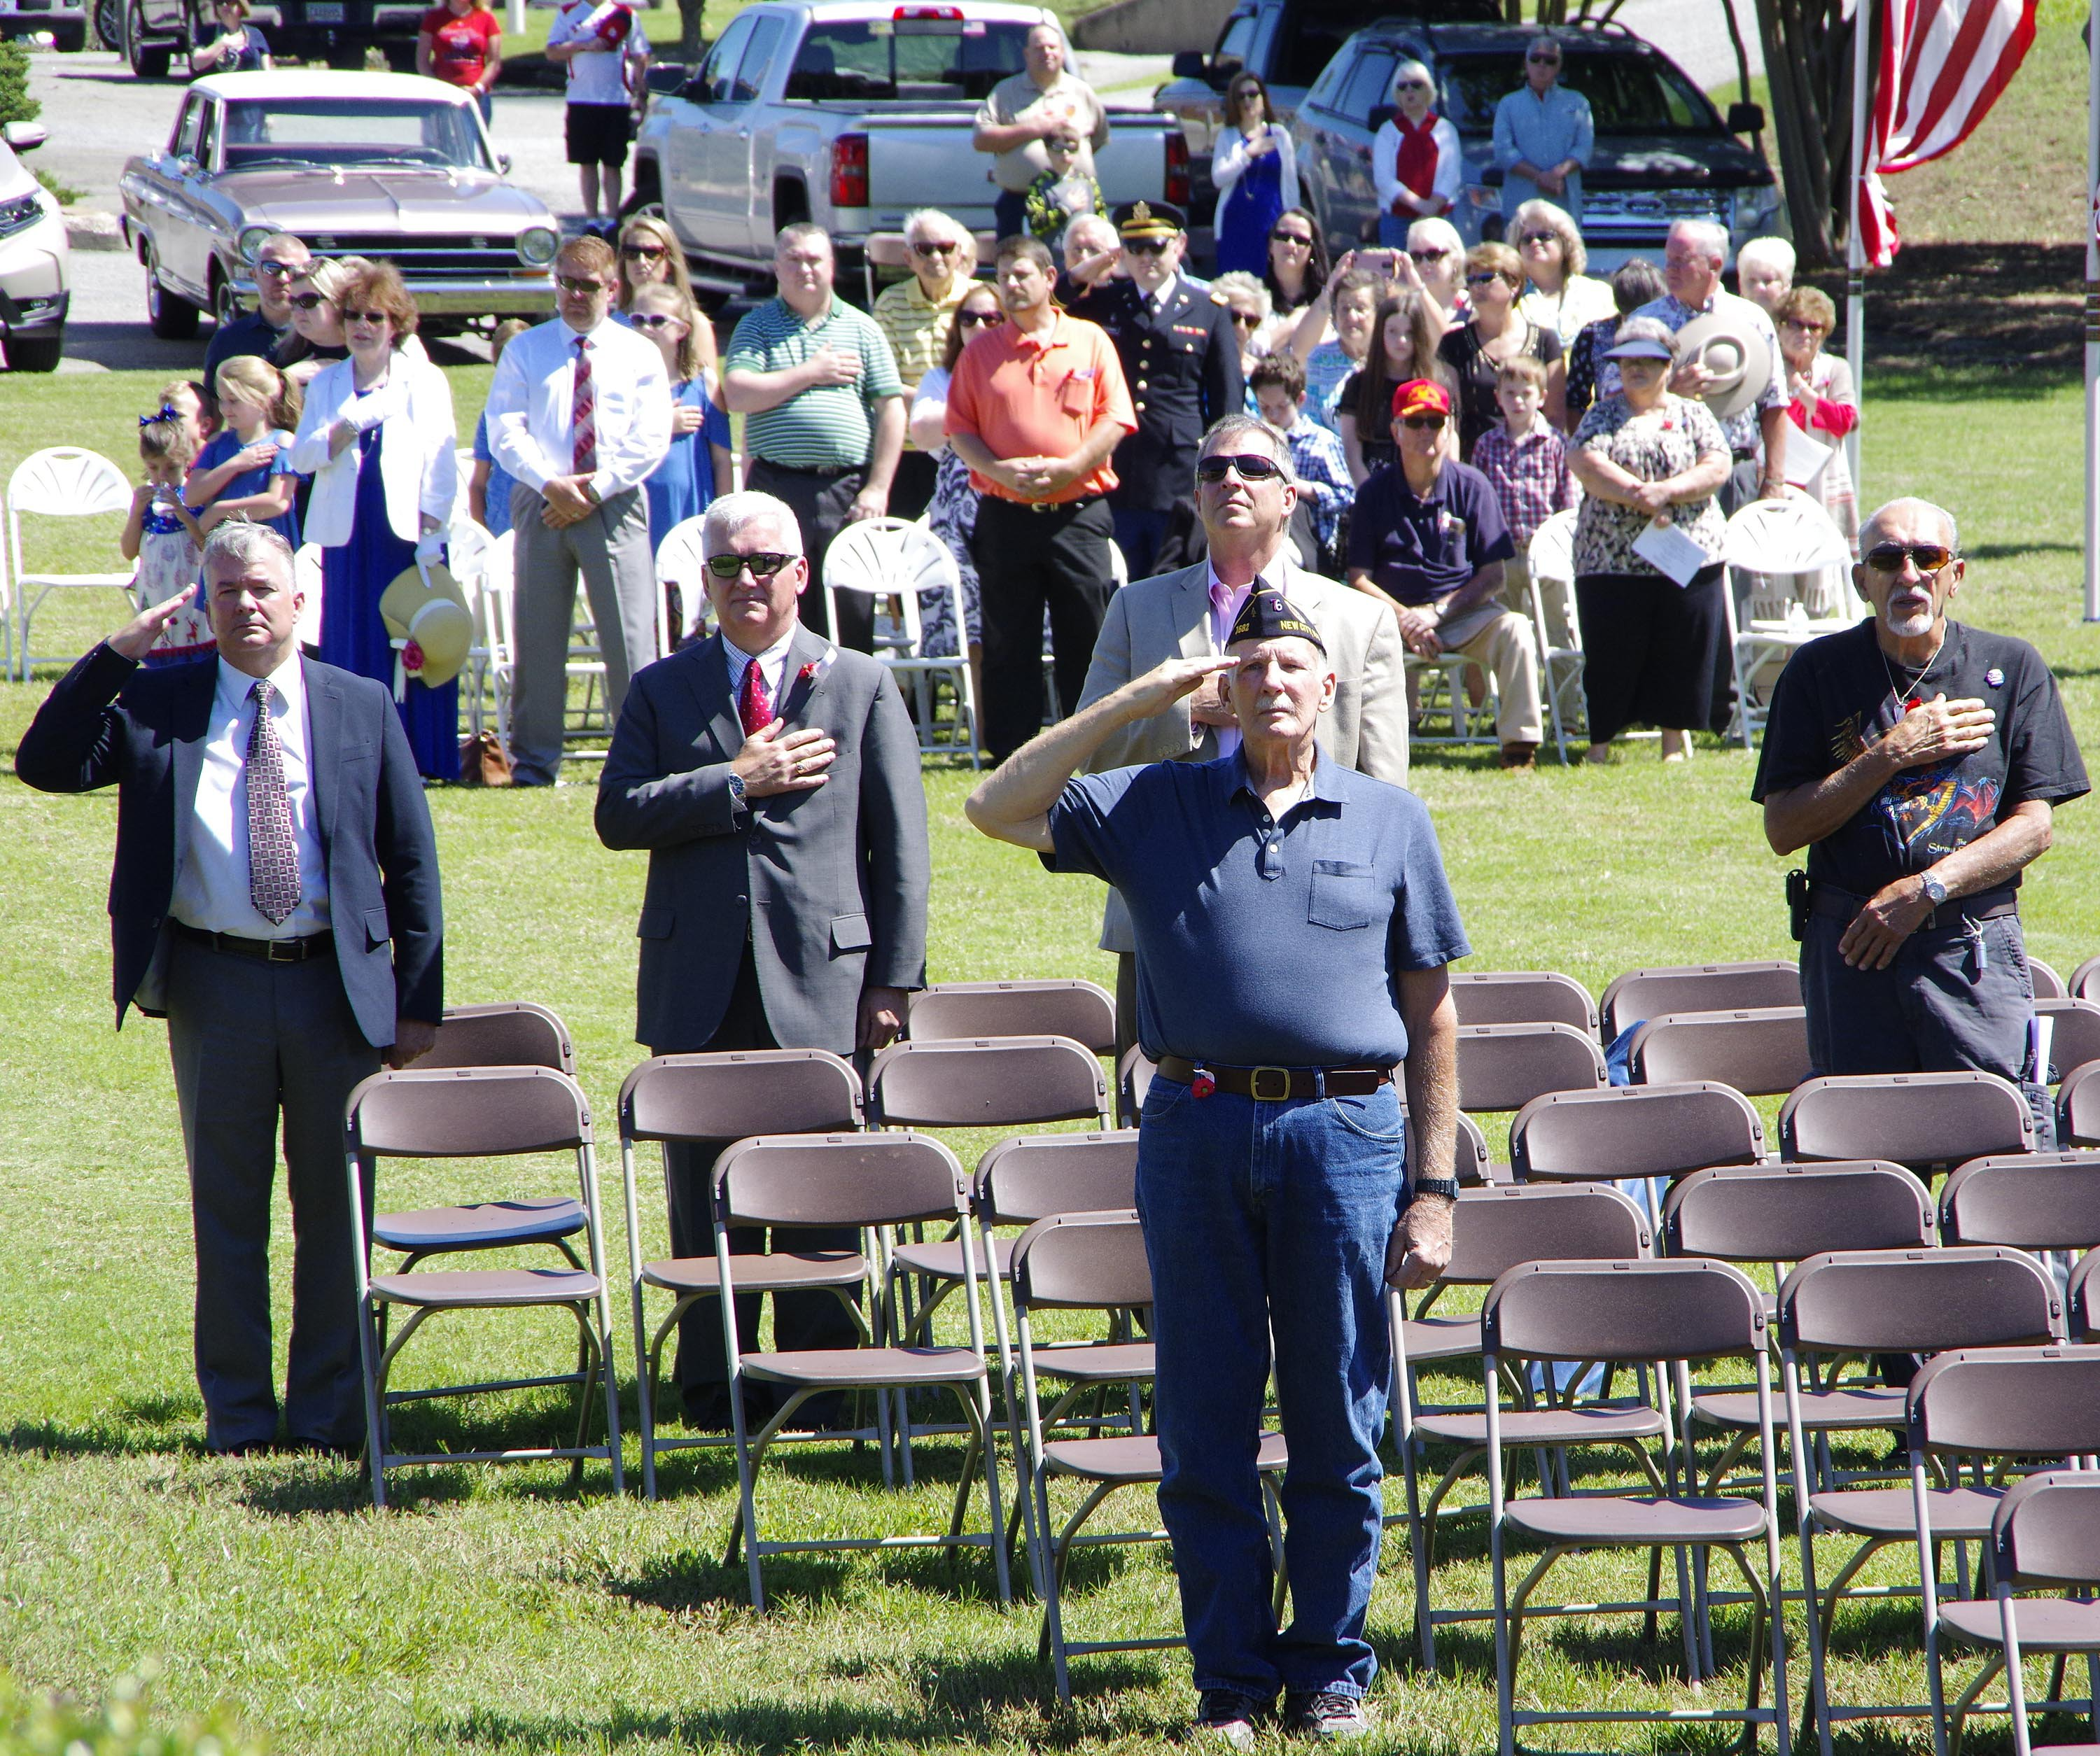 Veterans in the audience salute as the colors pass by.